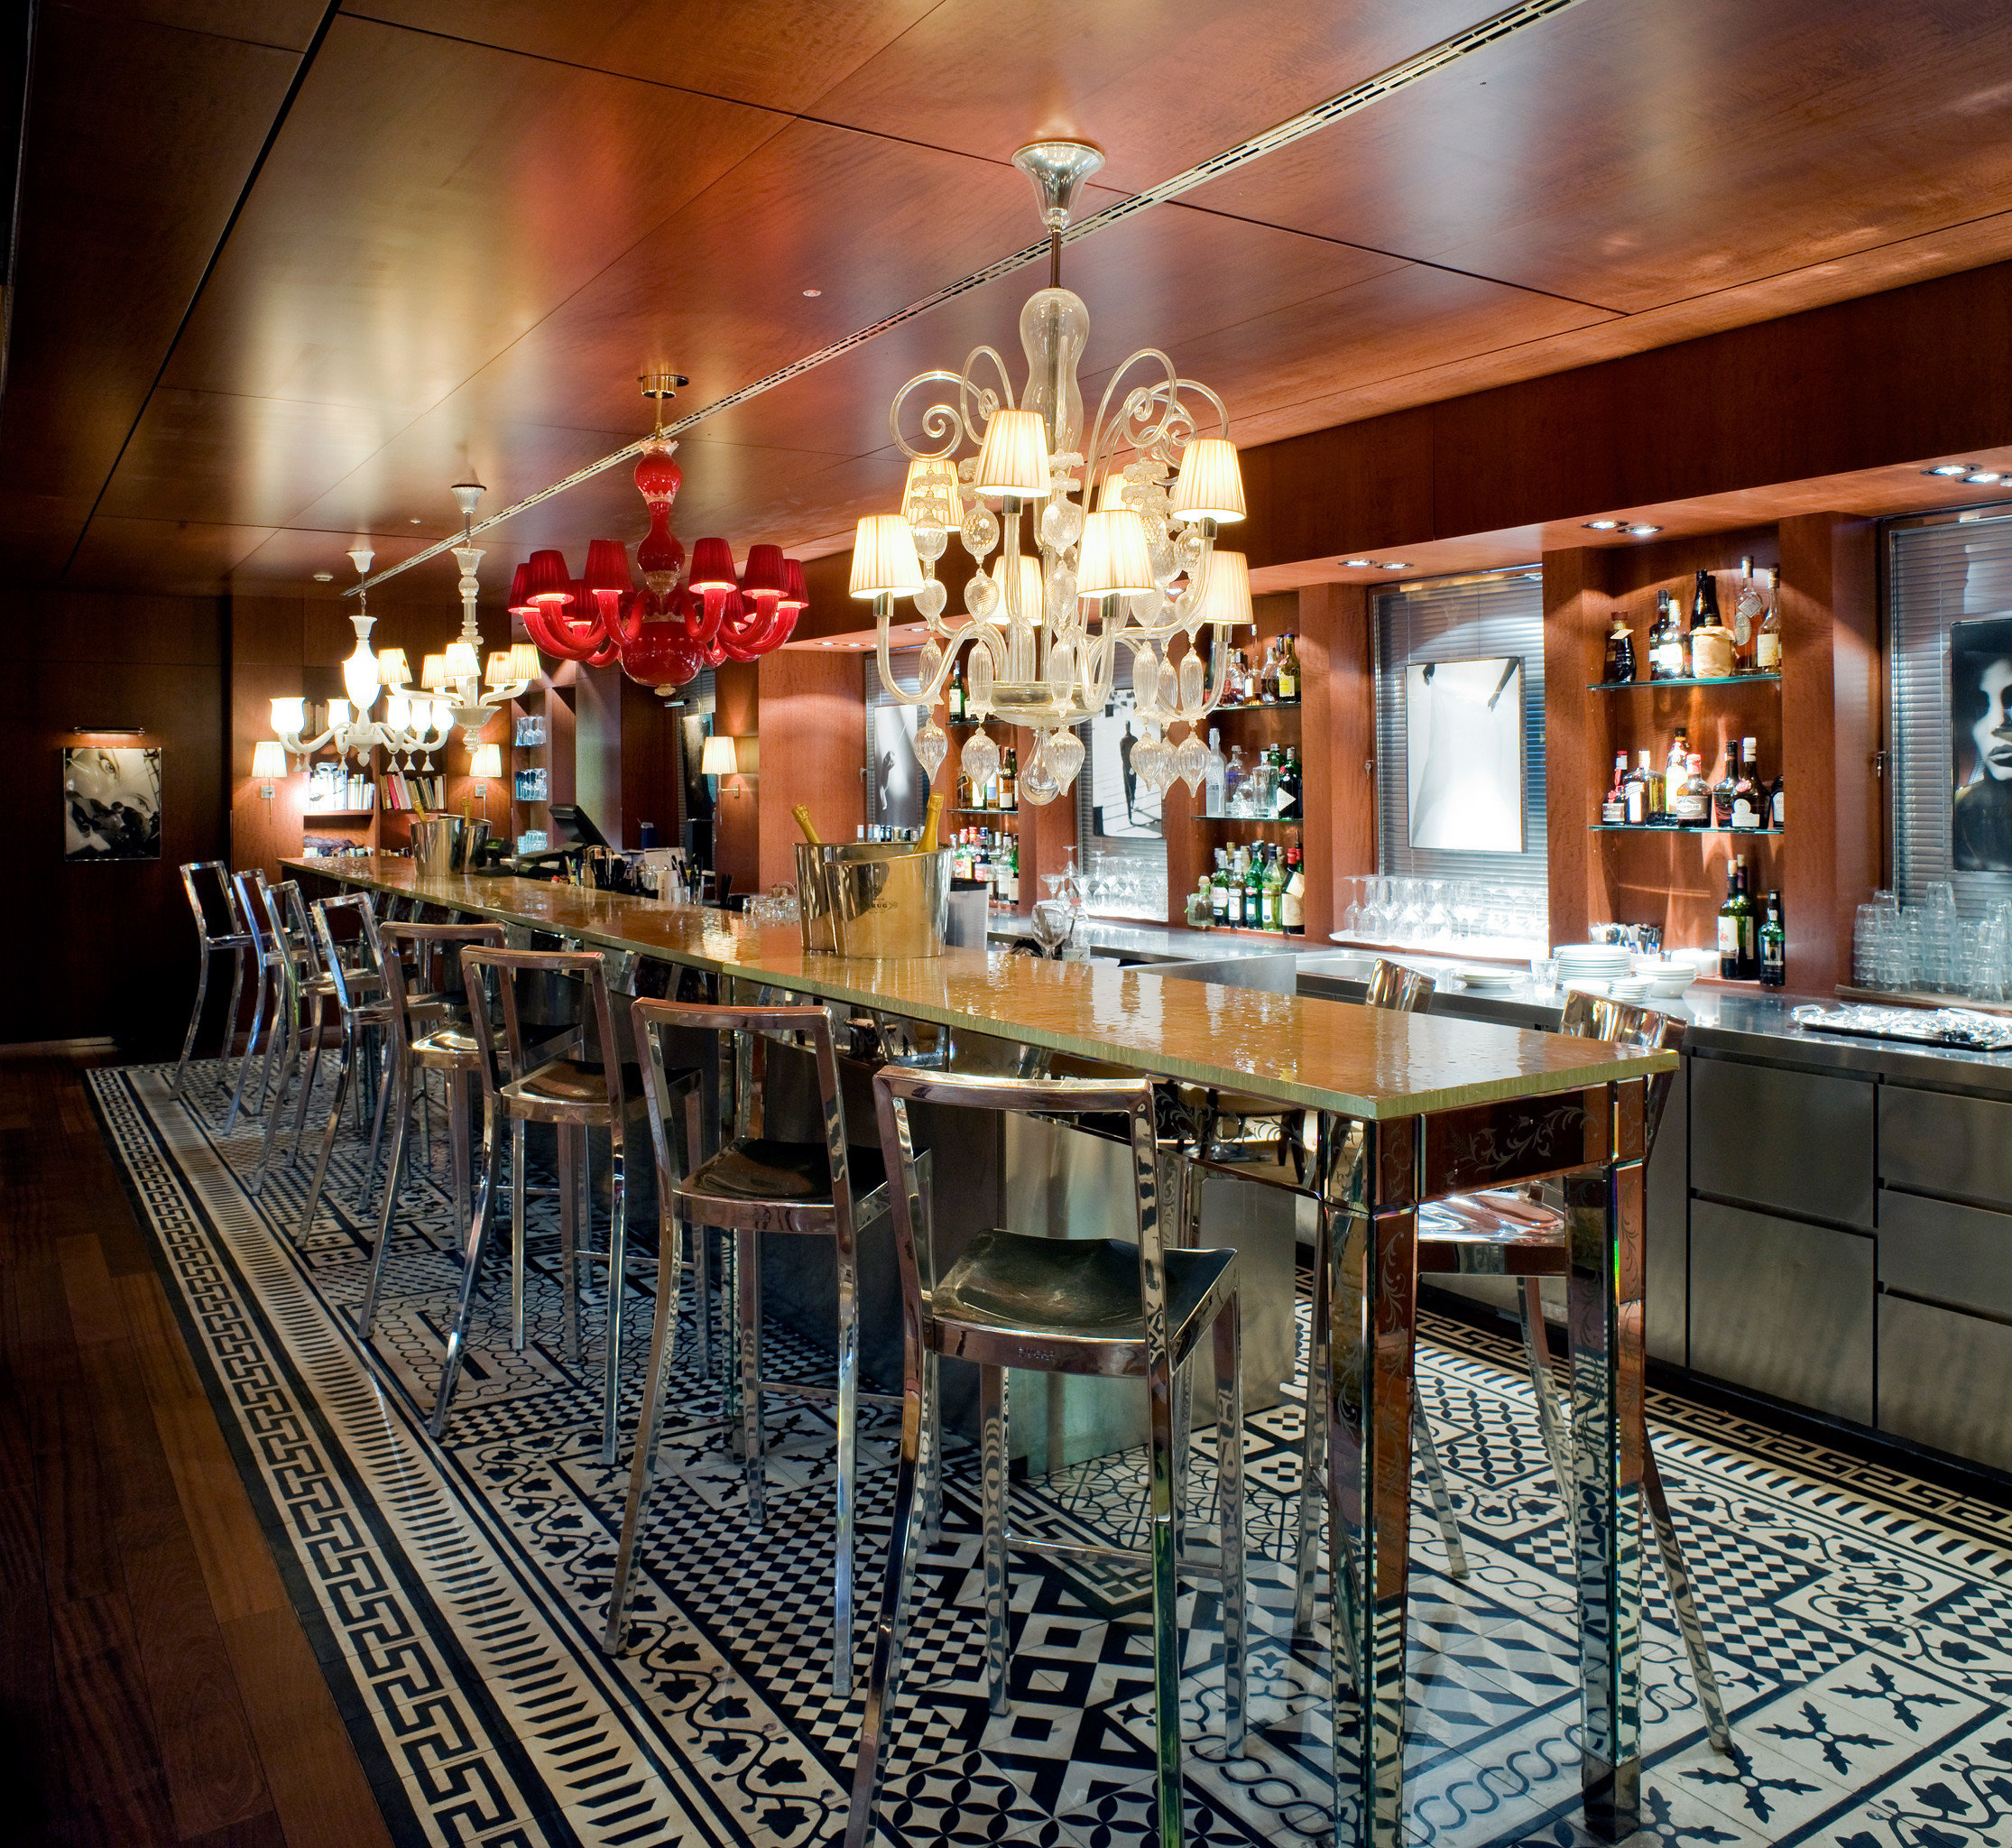 Bar City Drink Hip Hotels Italy Luxury Luxury Travel Venice indoor Kitchen ceiling meal restaurant interior design cooking area dining room